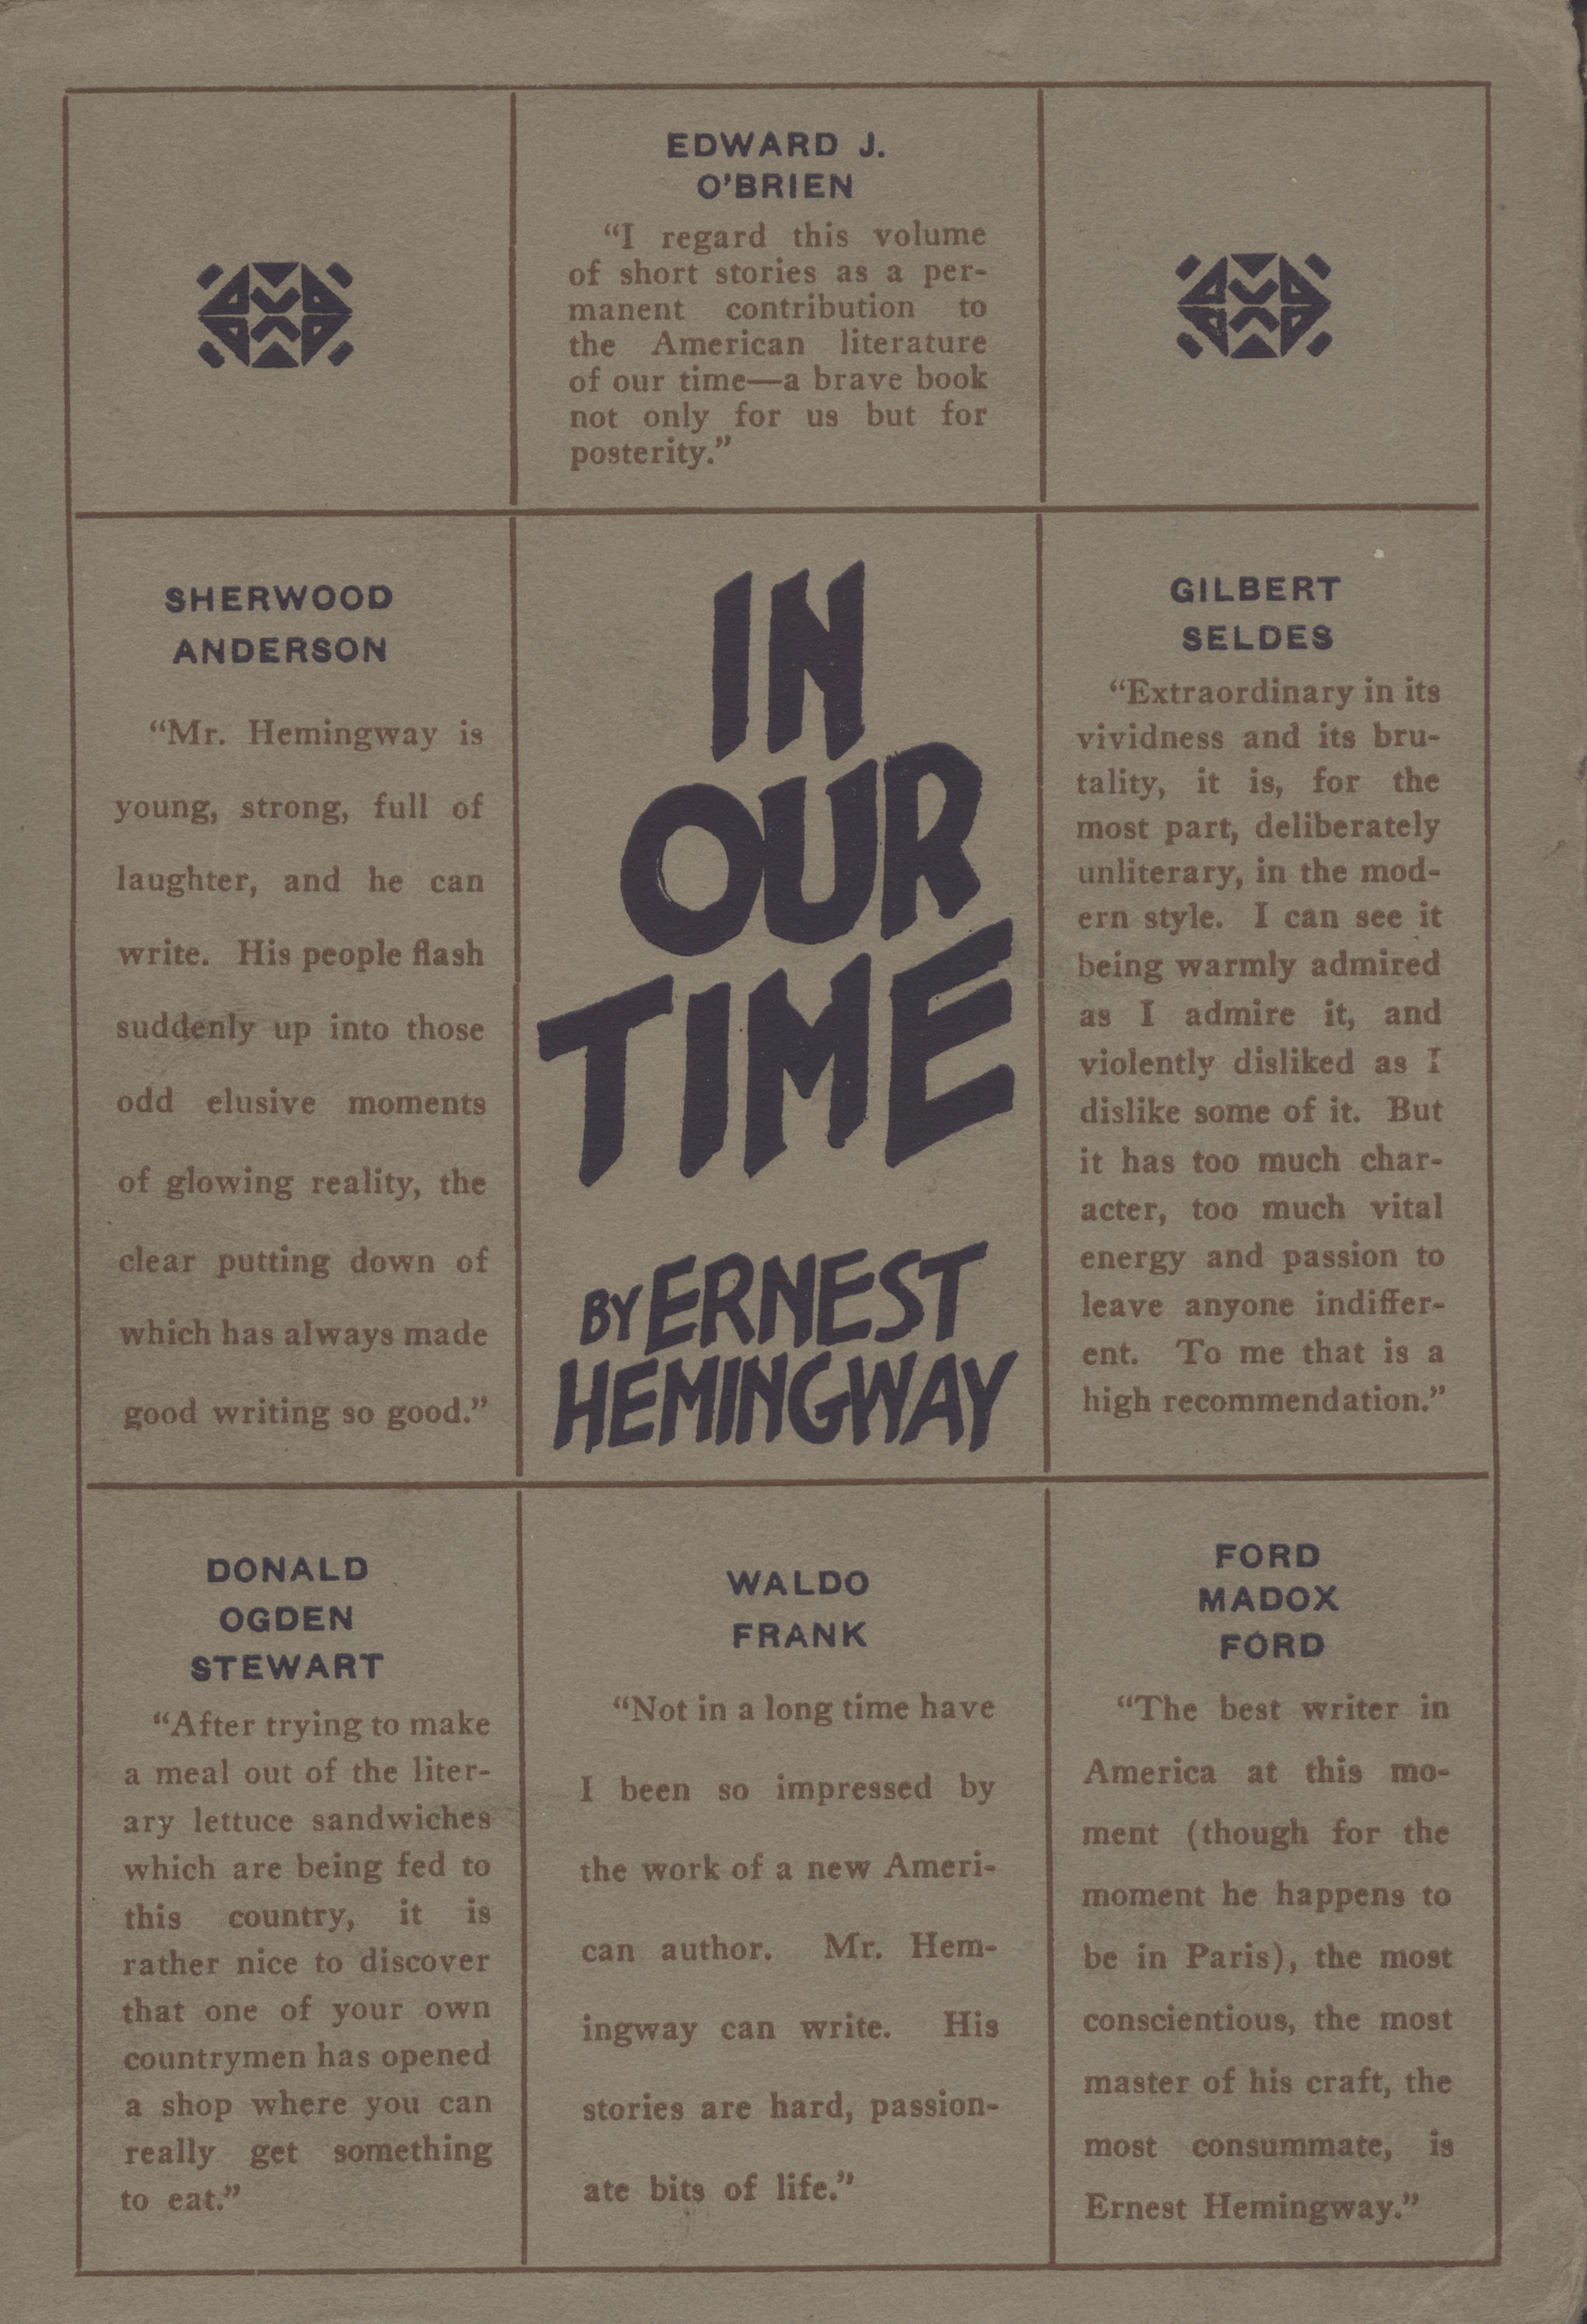 a narrative about reading hemingways collection The hemingway collection and reading hemingway's post-1930 letters for   ernist intertext that traces a narrative of intense rivalry, joint psychological  influence.